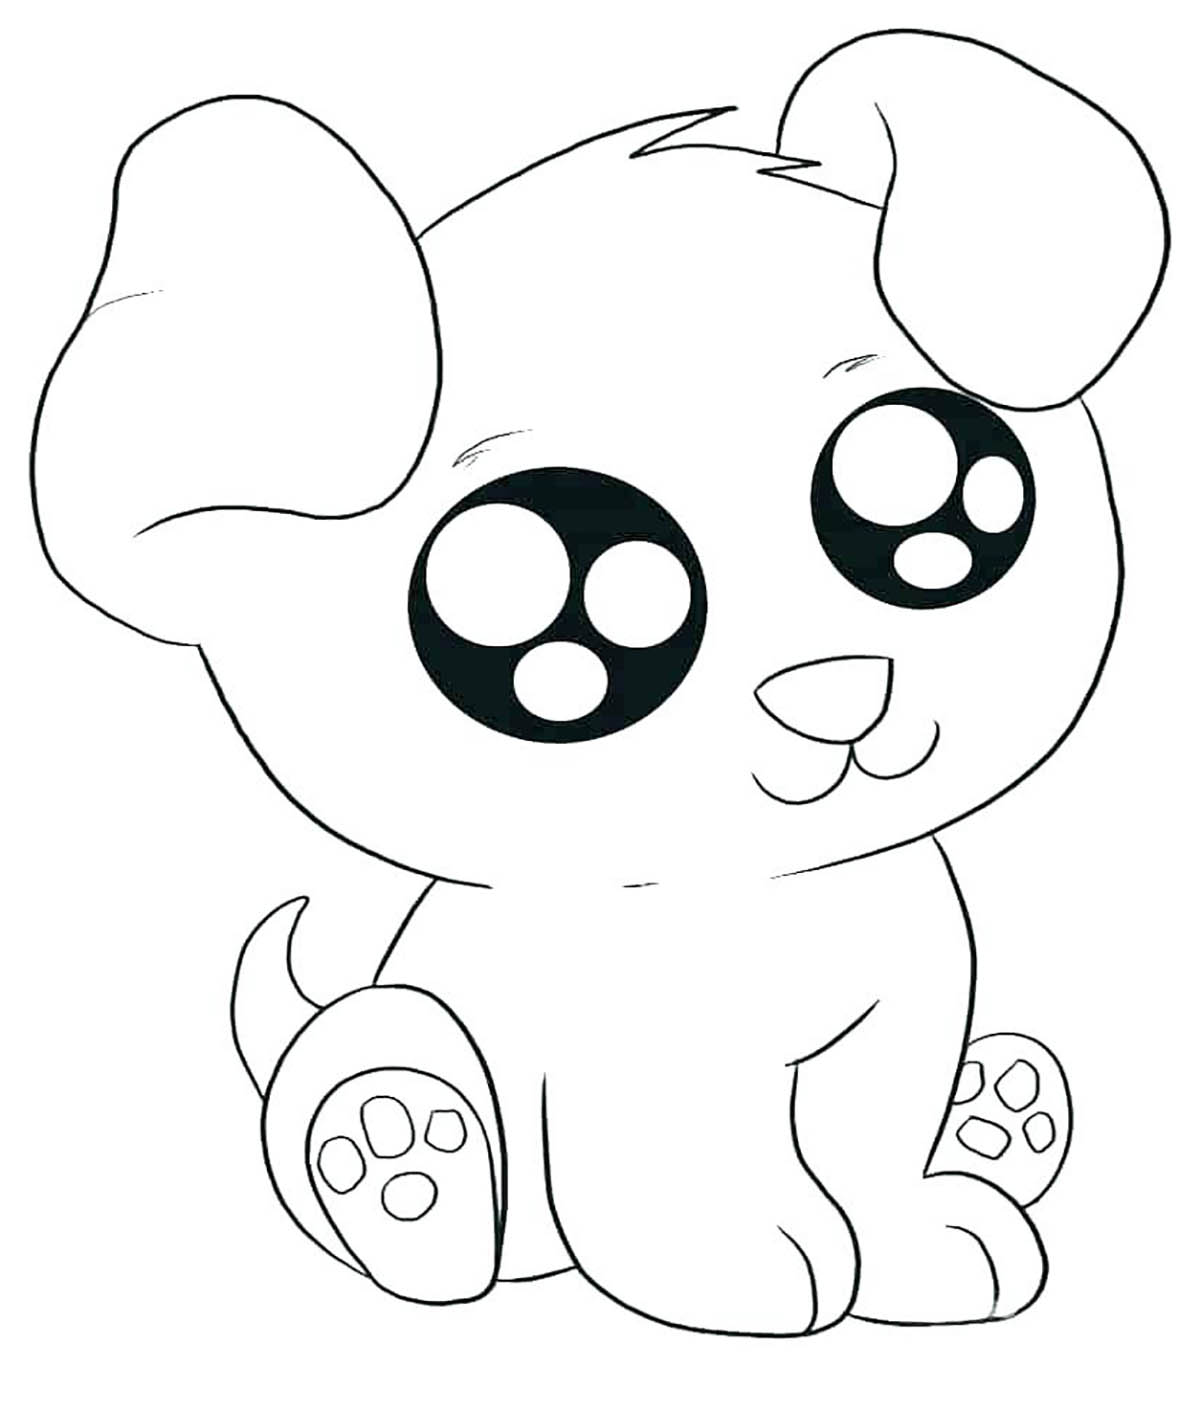 Dogs to print Kawa dog Dogs Kids Coloring Pages